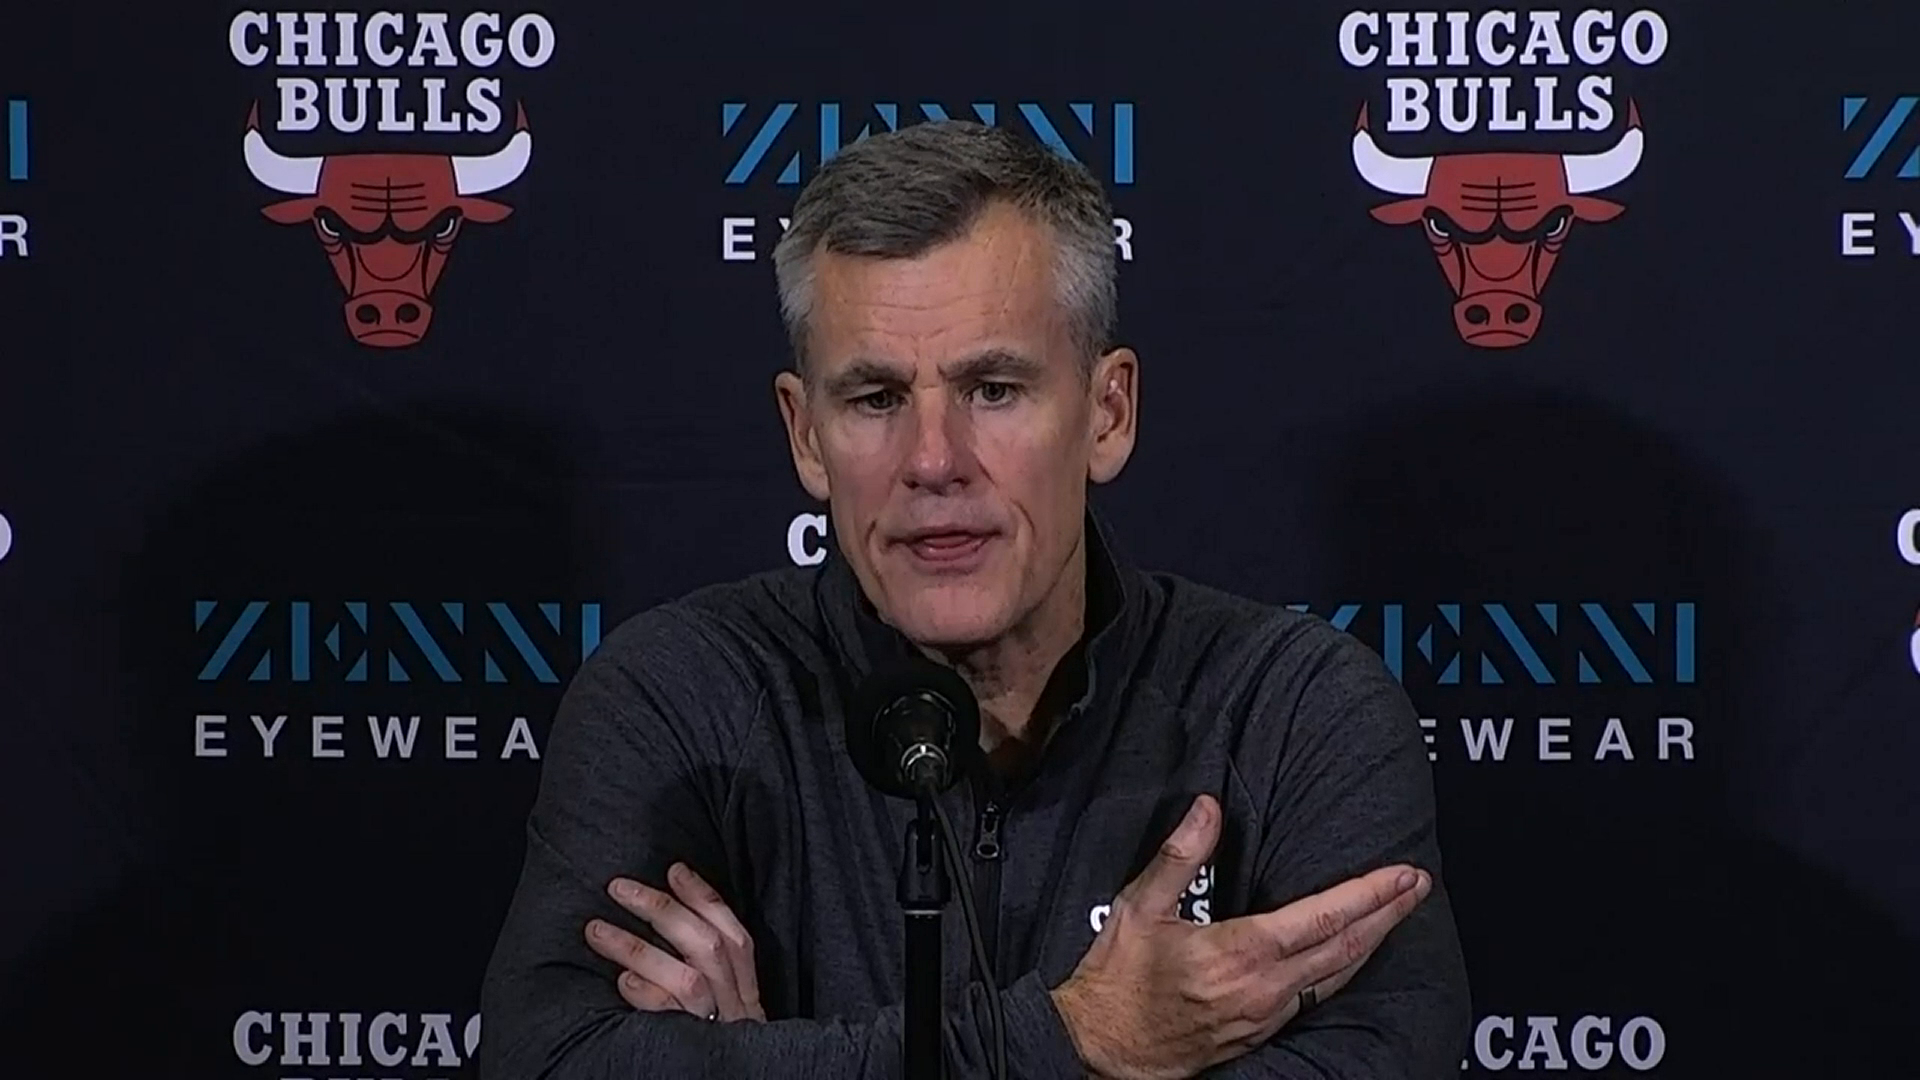 Post Game: Coach Donovan on Bulls moving to 4-0